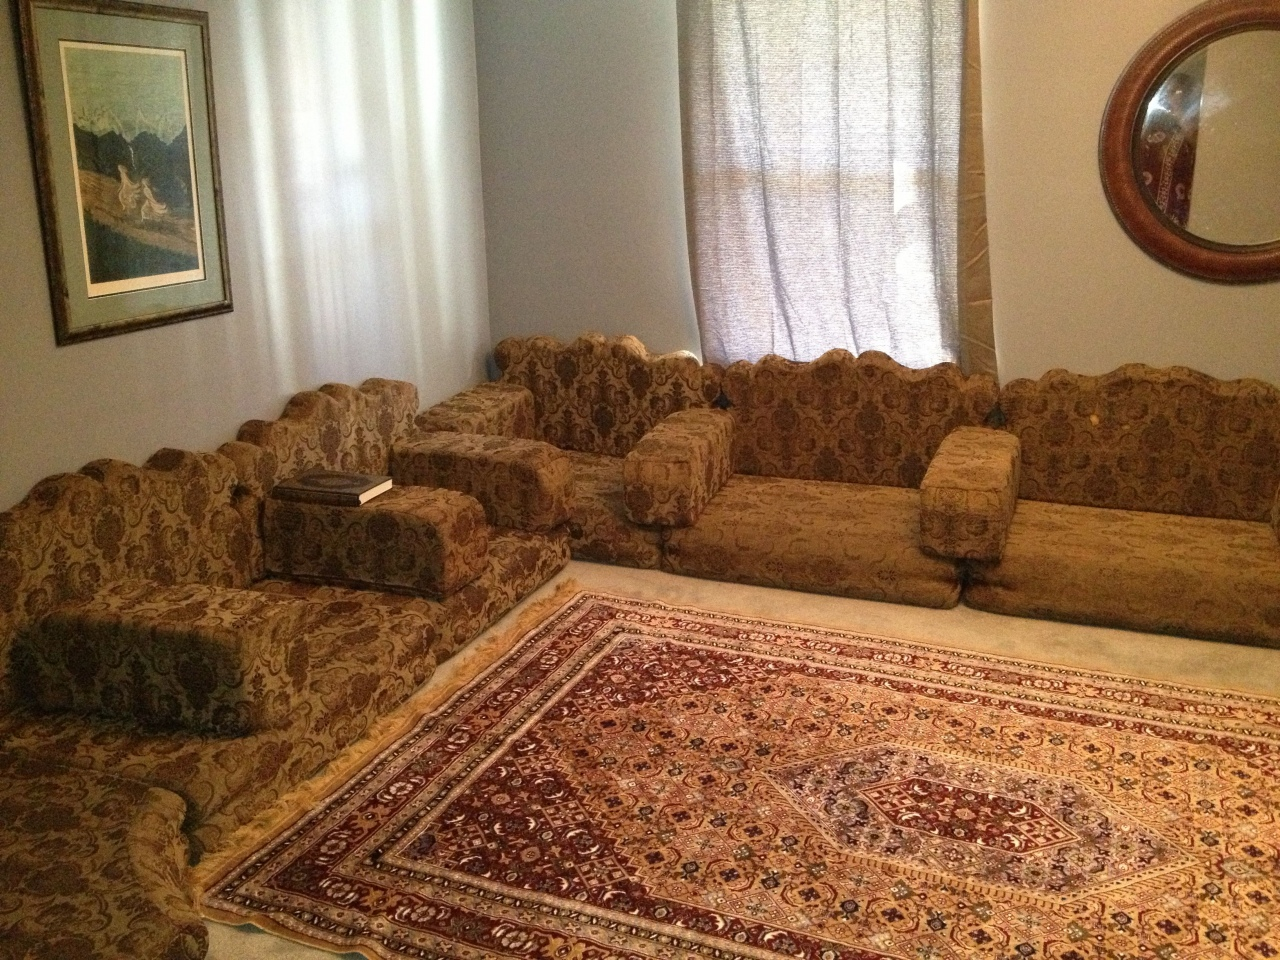 Sculptured Carpet Pros And Cons